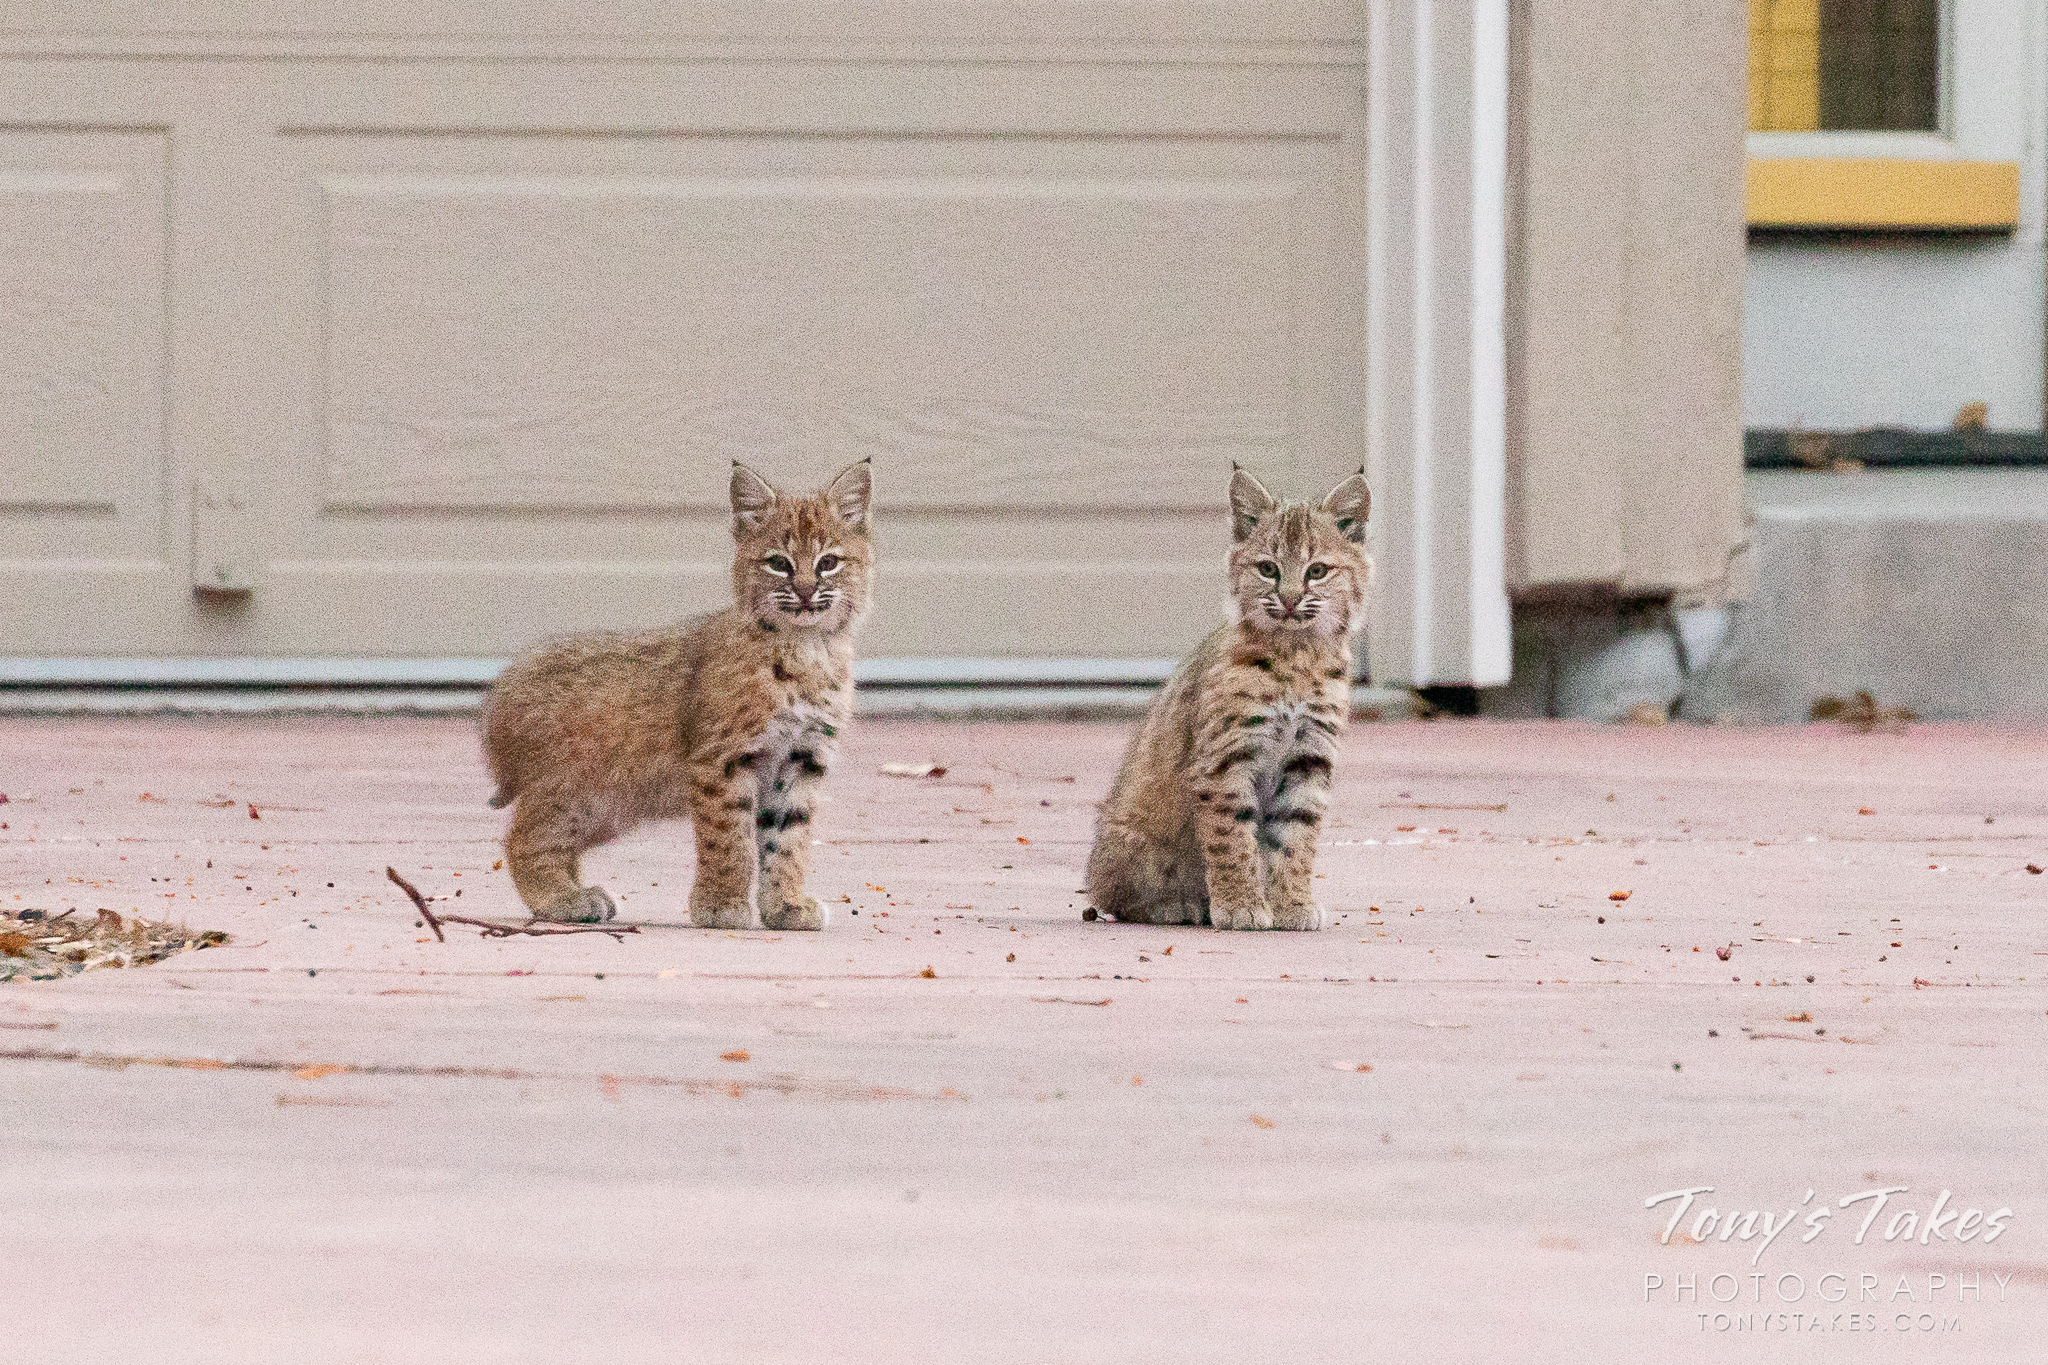 Bobcat kittens keep close watch from a driveway. (© Tony's Takes)